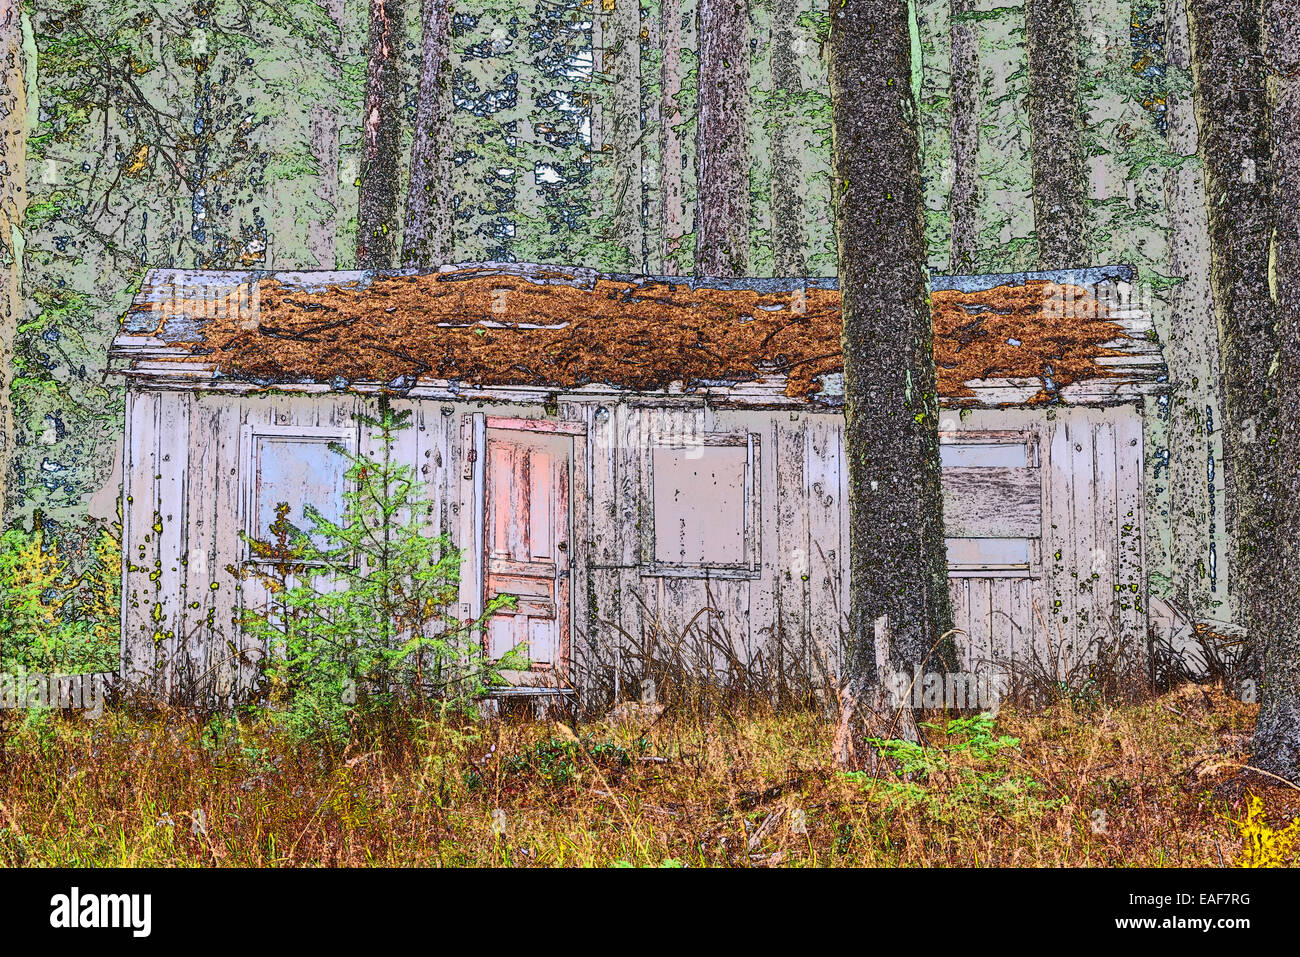 Decaying cabin in Oregon's Blue Mountains. - Stock Image